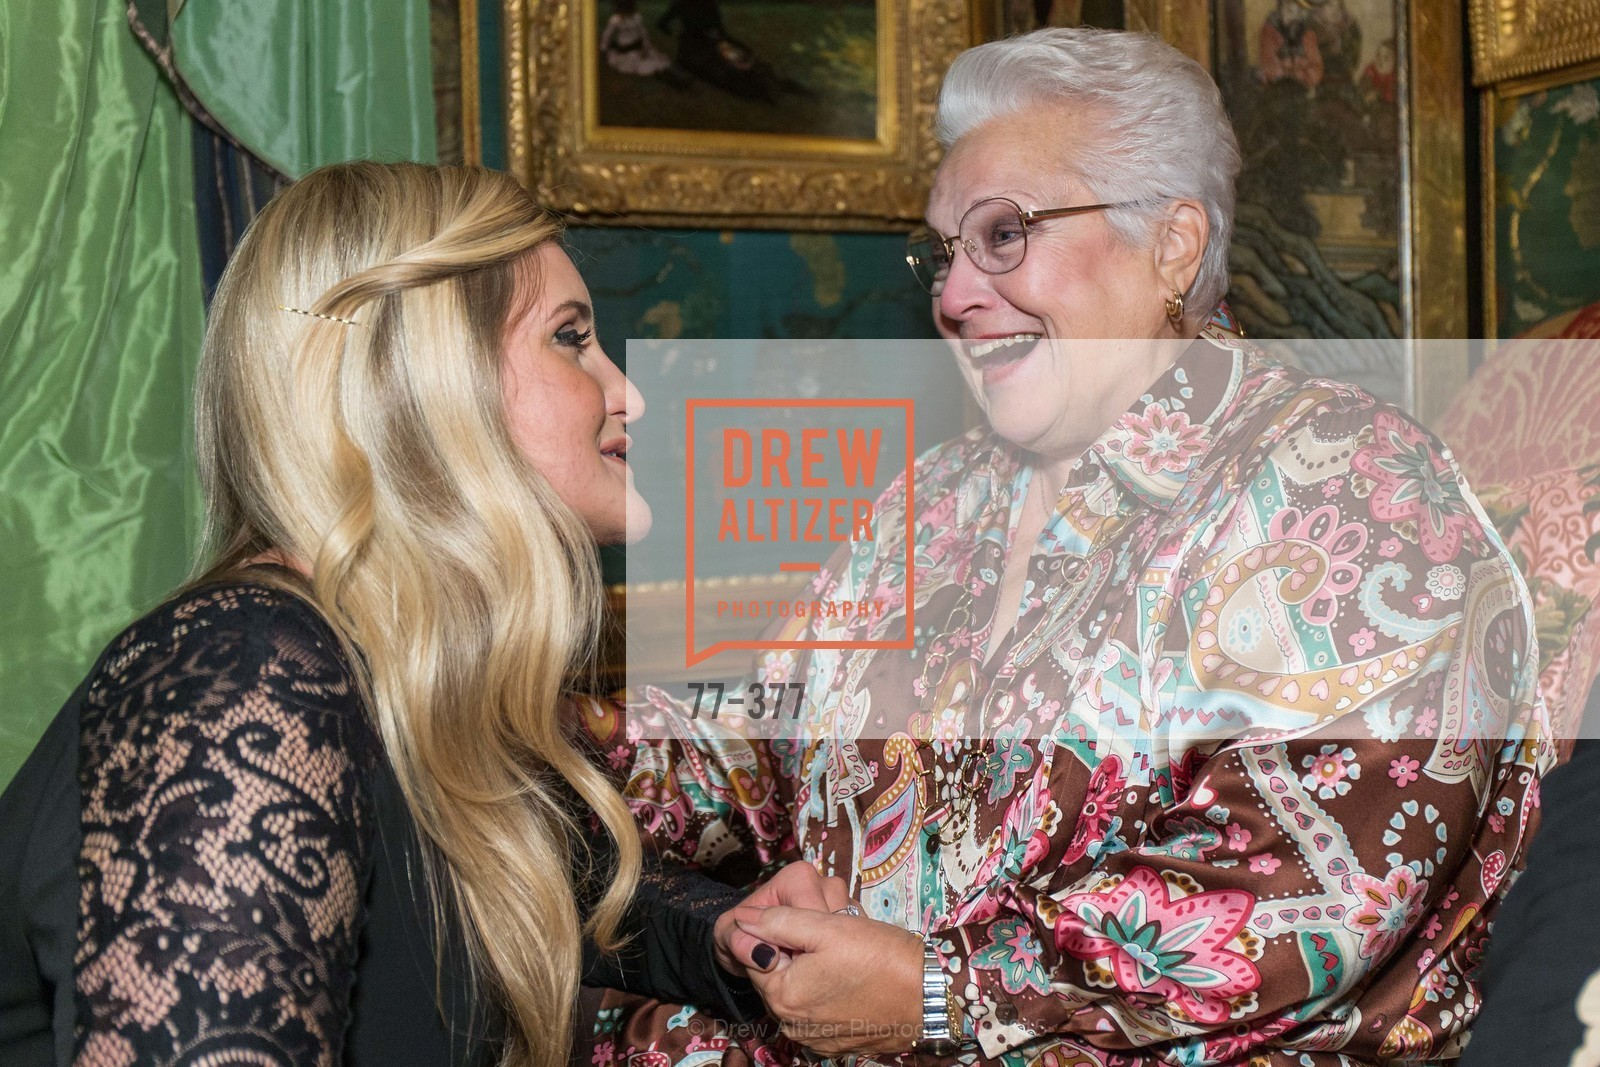 Julie Adams, Marilyn Horne, Getty Host SF Conservatory of Music with Marilyn Horne, Private Residence, October 15th, 2015,Drew Altizer, Drew Altizer Photography, full-service agency, private events, San Francisco photographer, photographer california